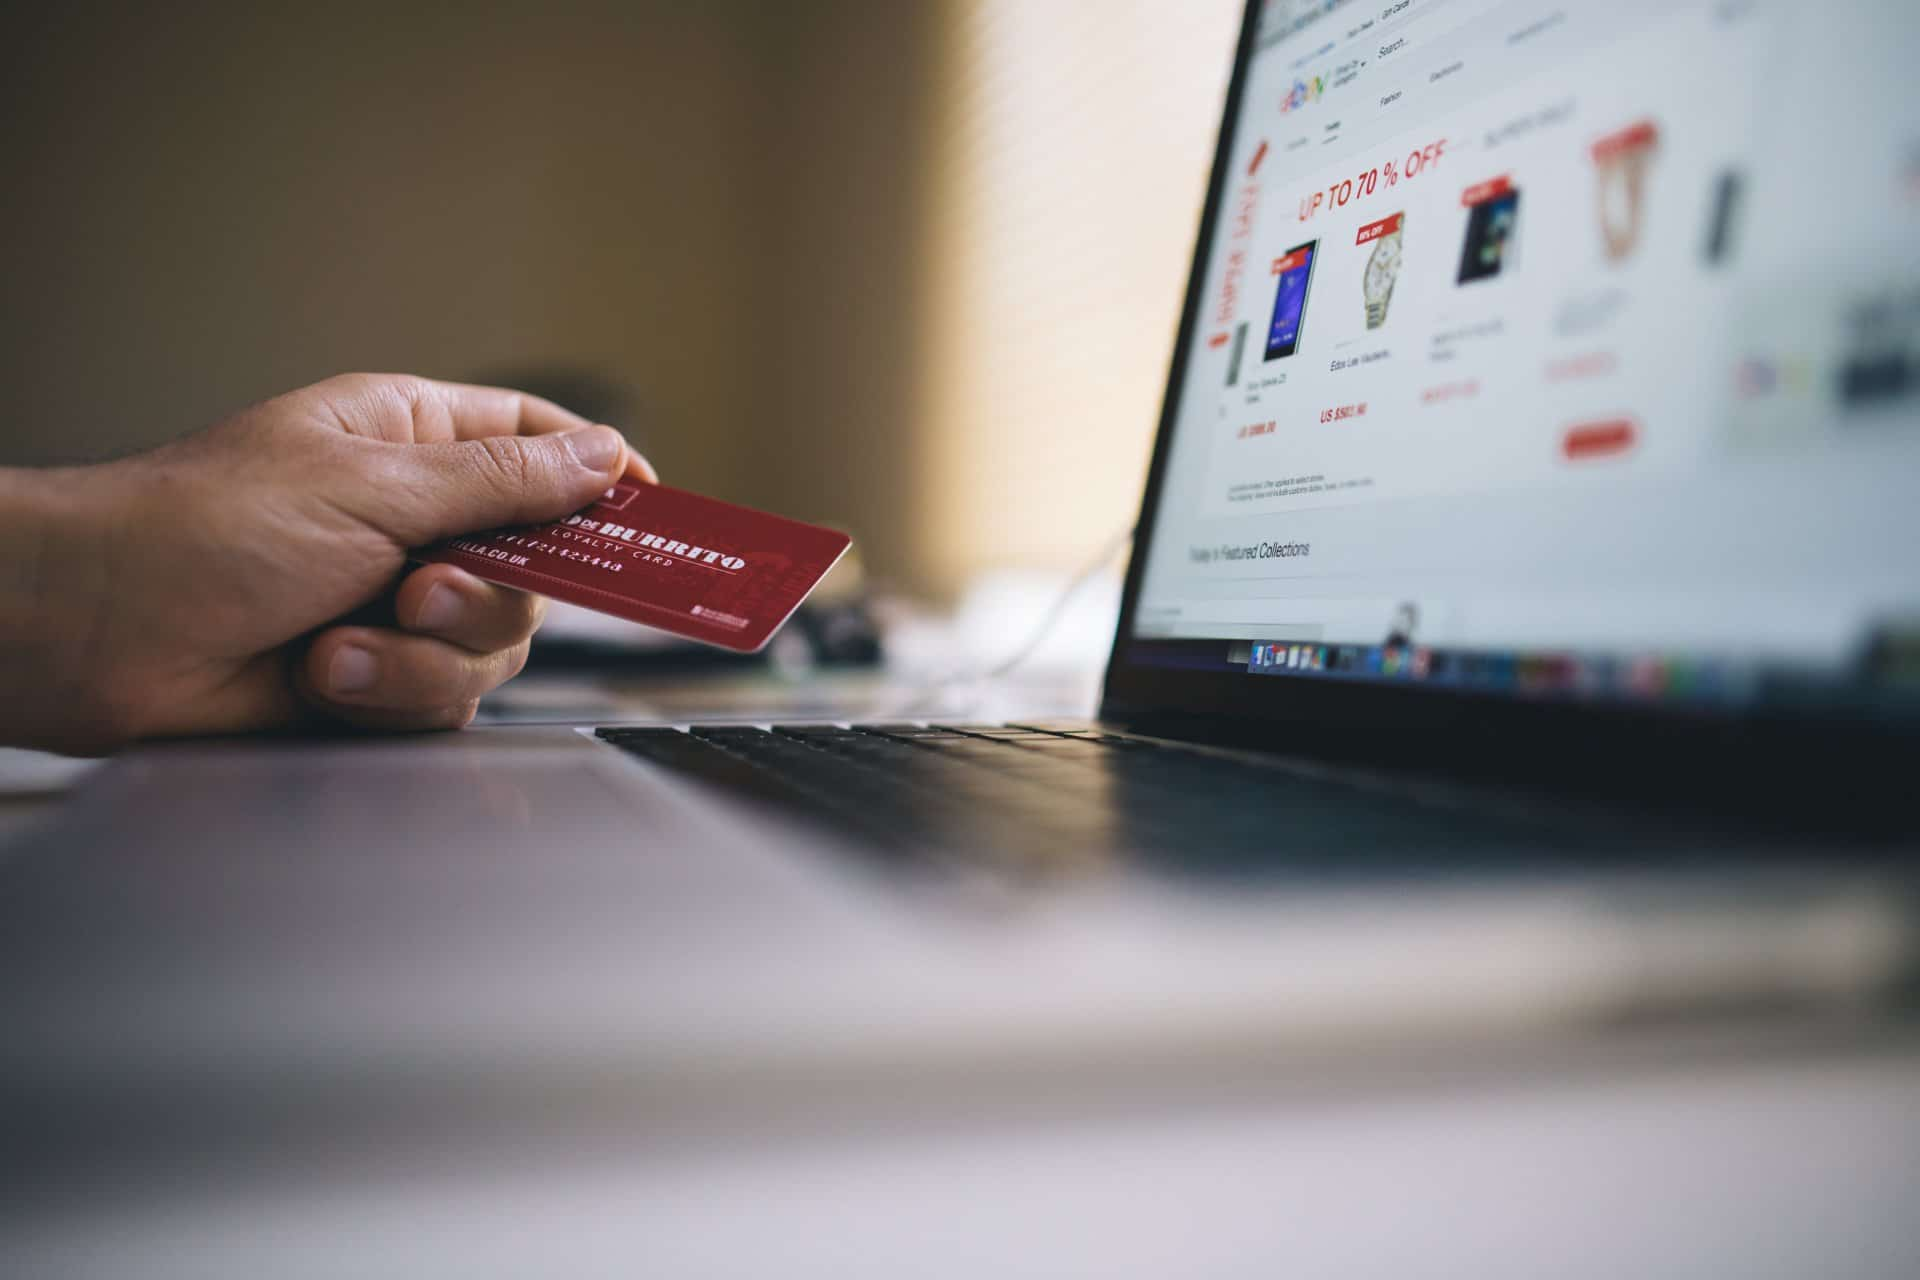 Benefits of rich product data in ecommerce